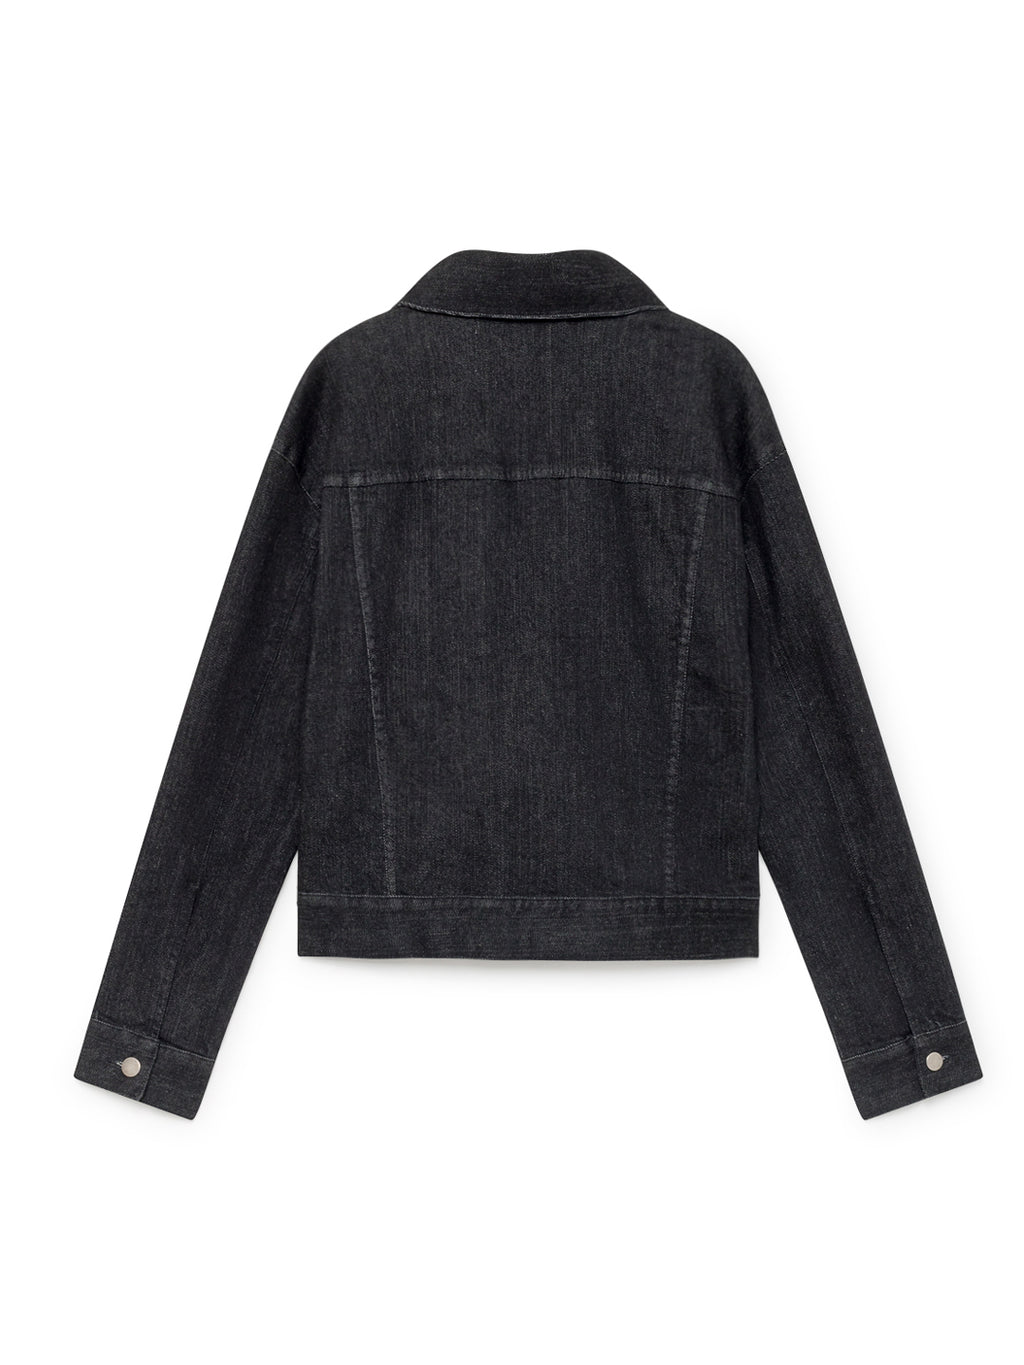 TWOTHIRDS Womens Jacket: Bellona - Black Denim back